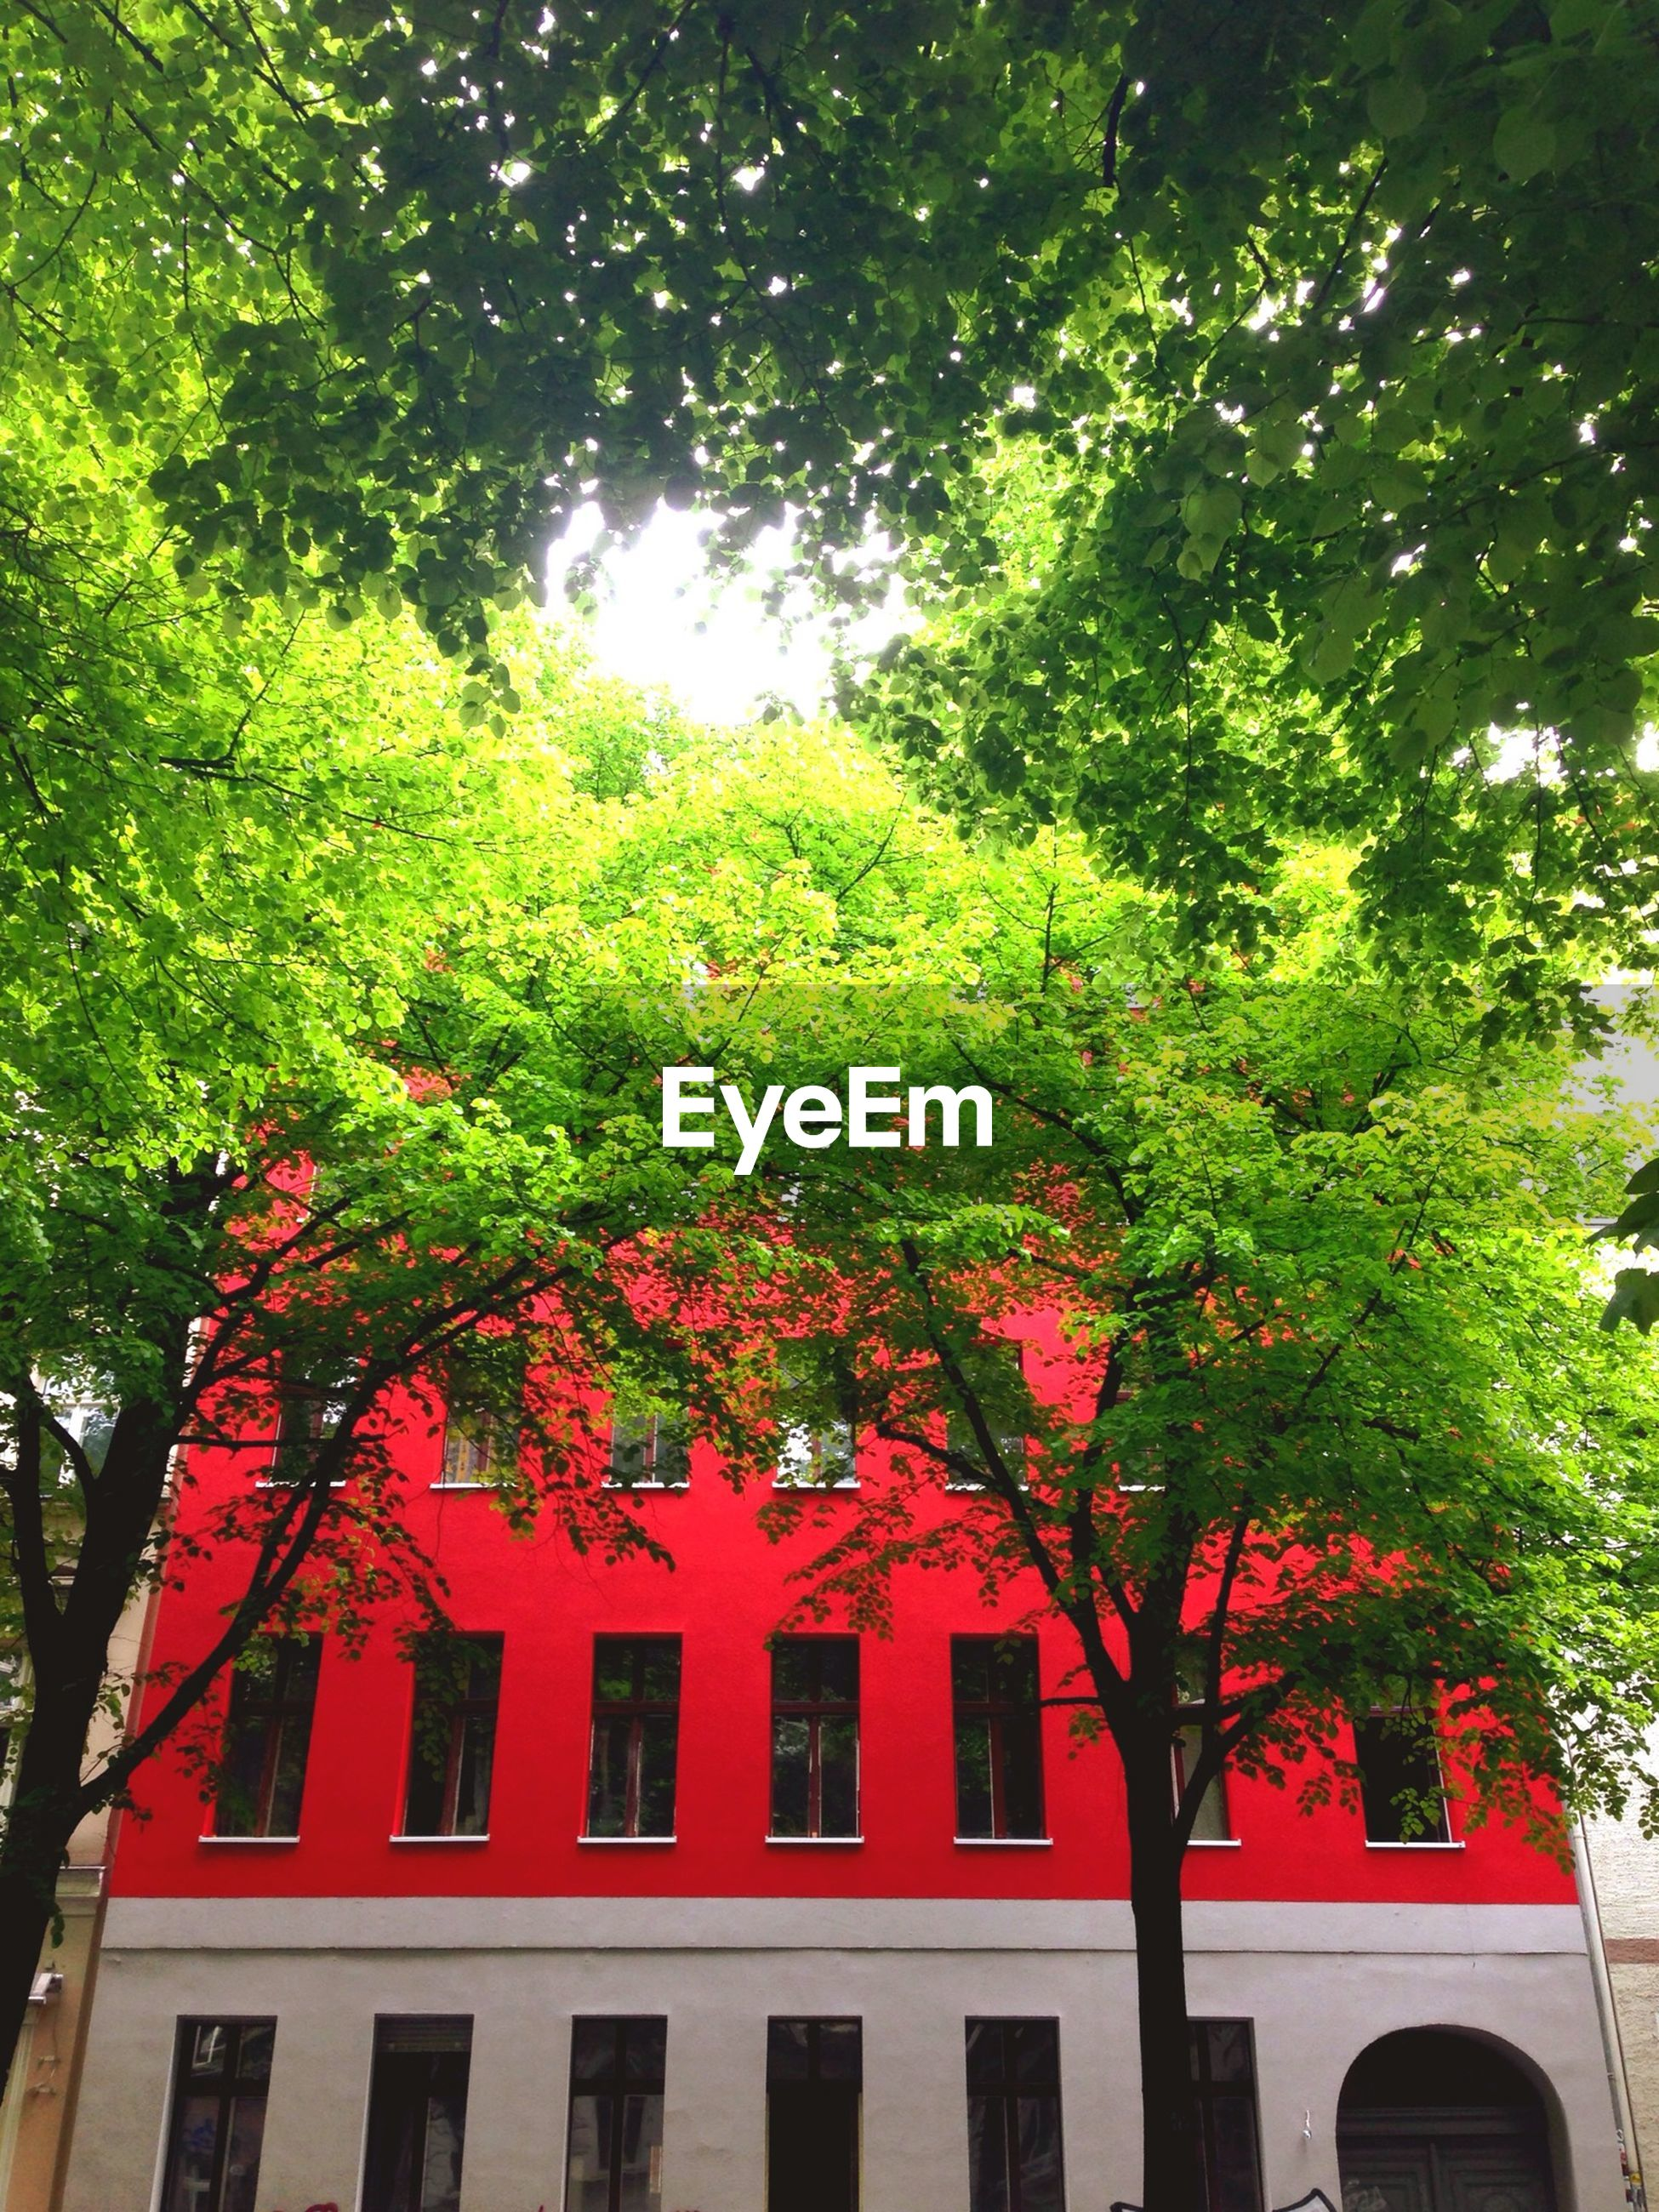 tree, growth, branch, architecture, building exterior, built structure, green color, nature, low angle view, red, house, window, day, outdoors, leaf, no people, lush foliage, sky, plant, beauty in nature